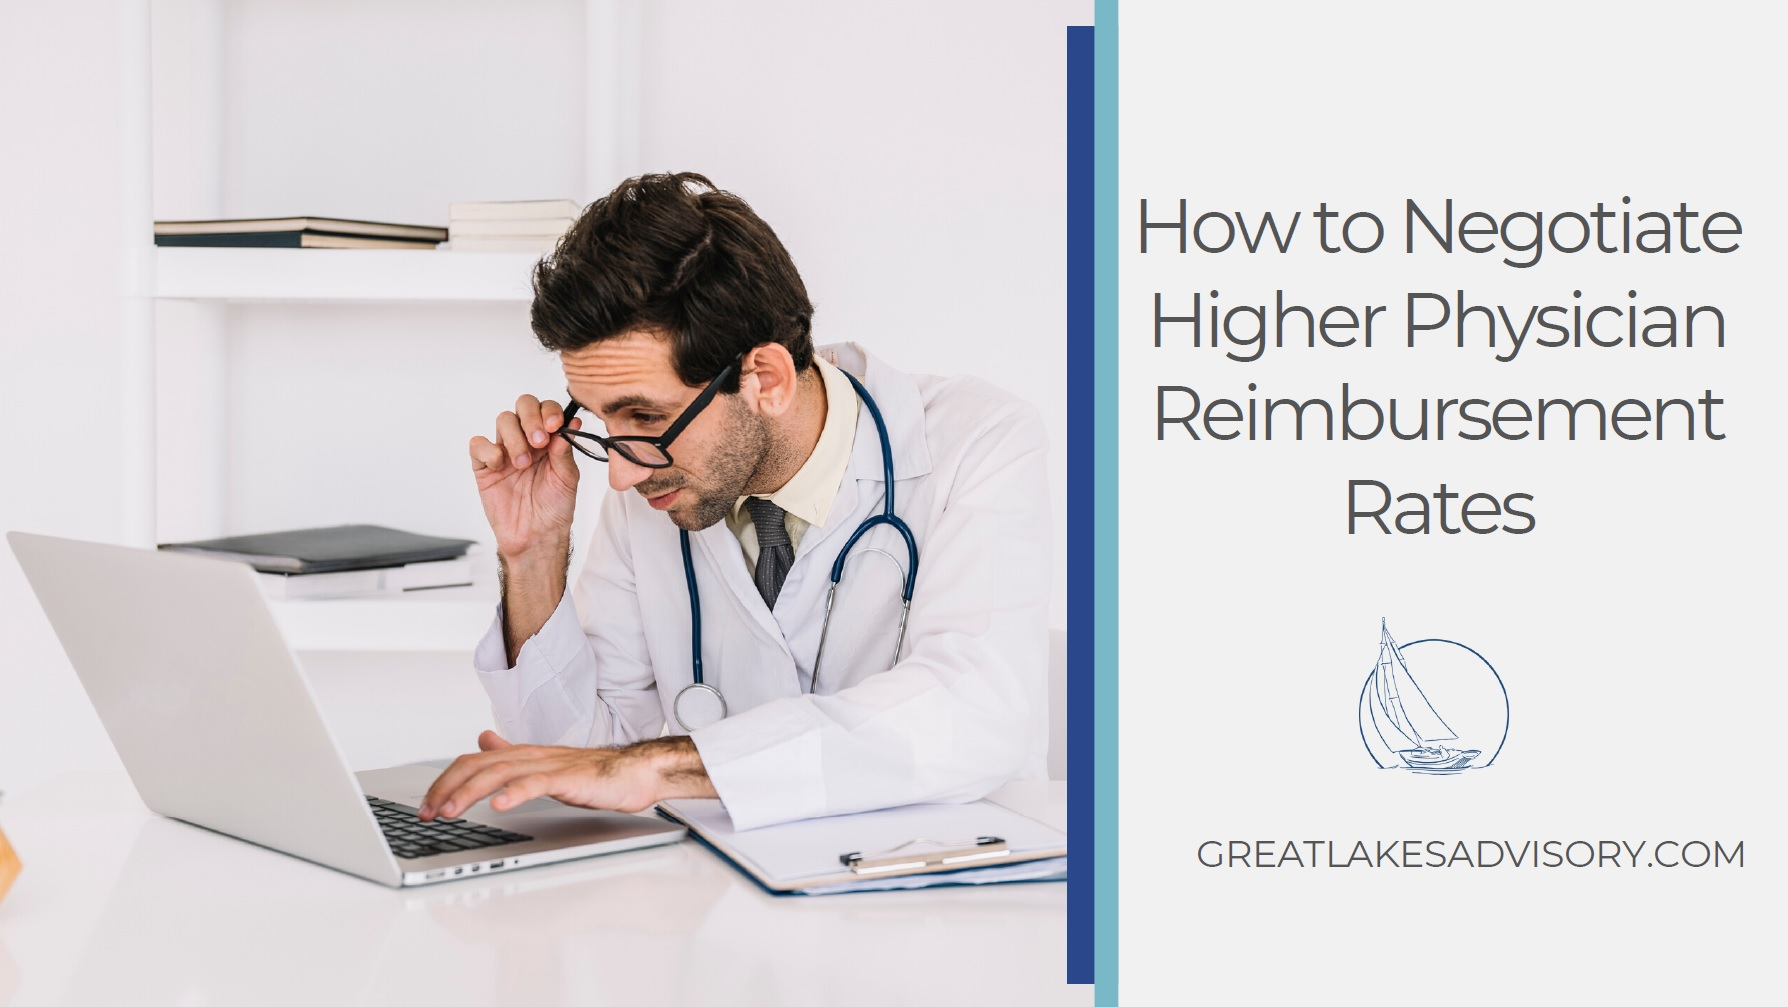 How to Negotiate Higher Physician Reimbursement Rates